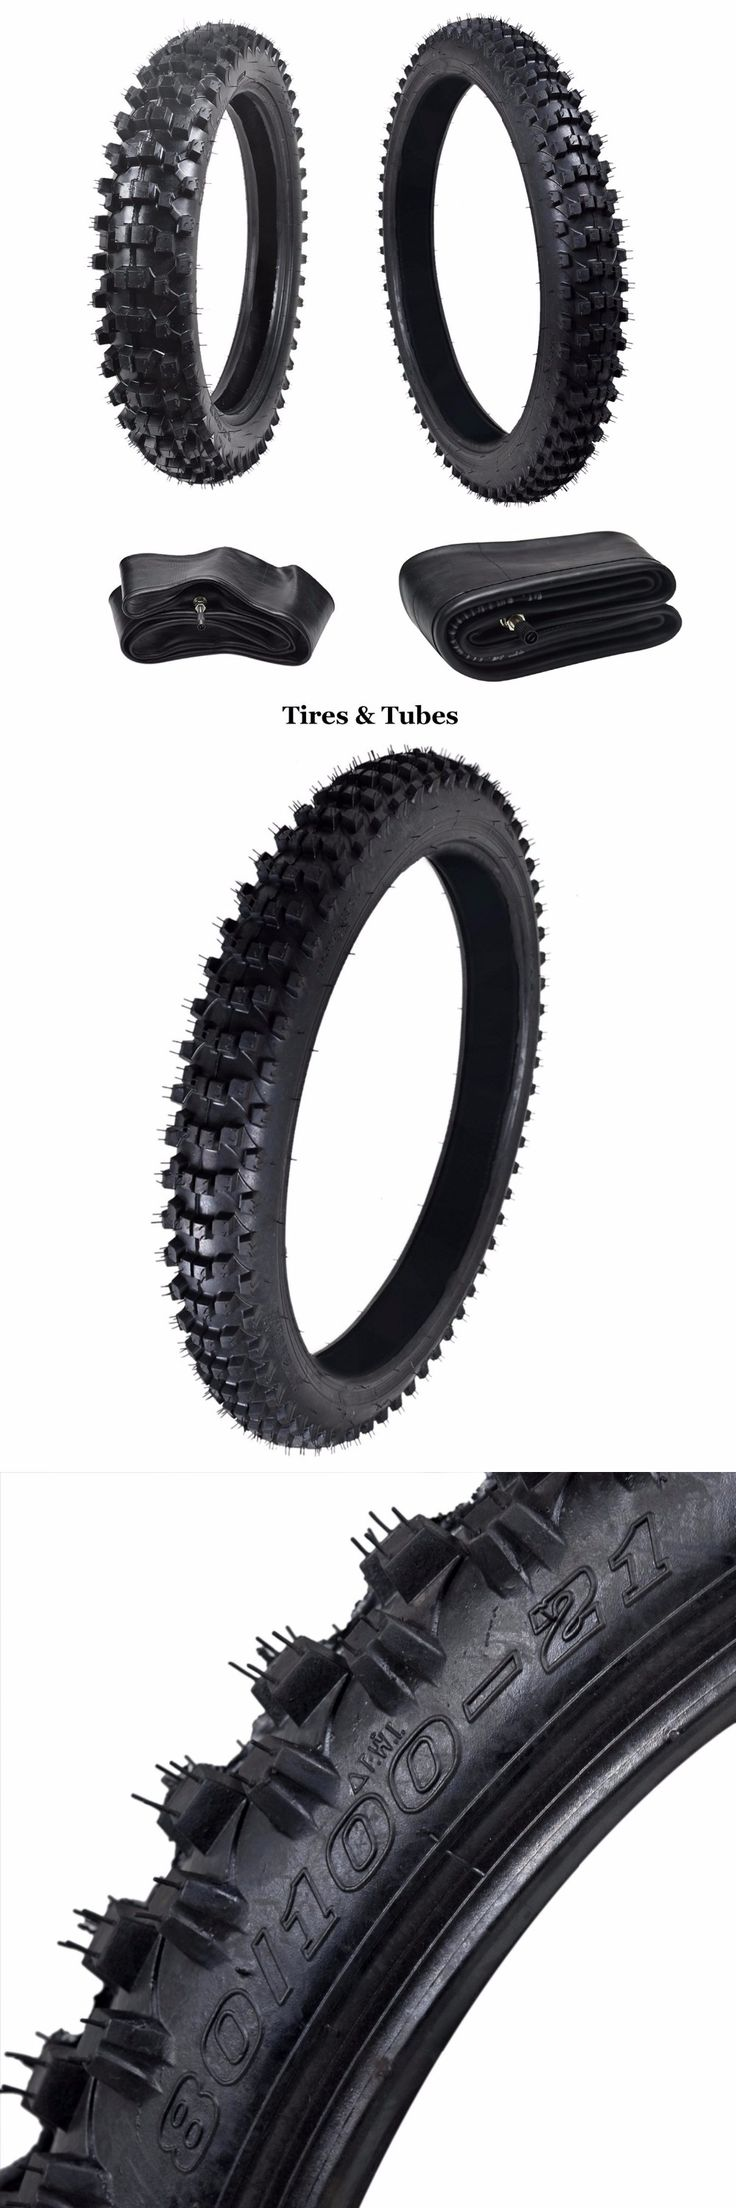 MYMOTOR Complete Tire Set: Front Tire 80/100-21 With Inner Tube + Rear 110/90-18 For Dirt Pit Bikes | Off Road Motorcycle Tires